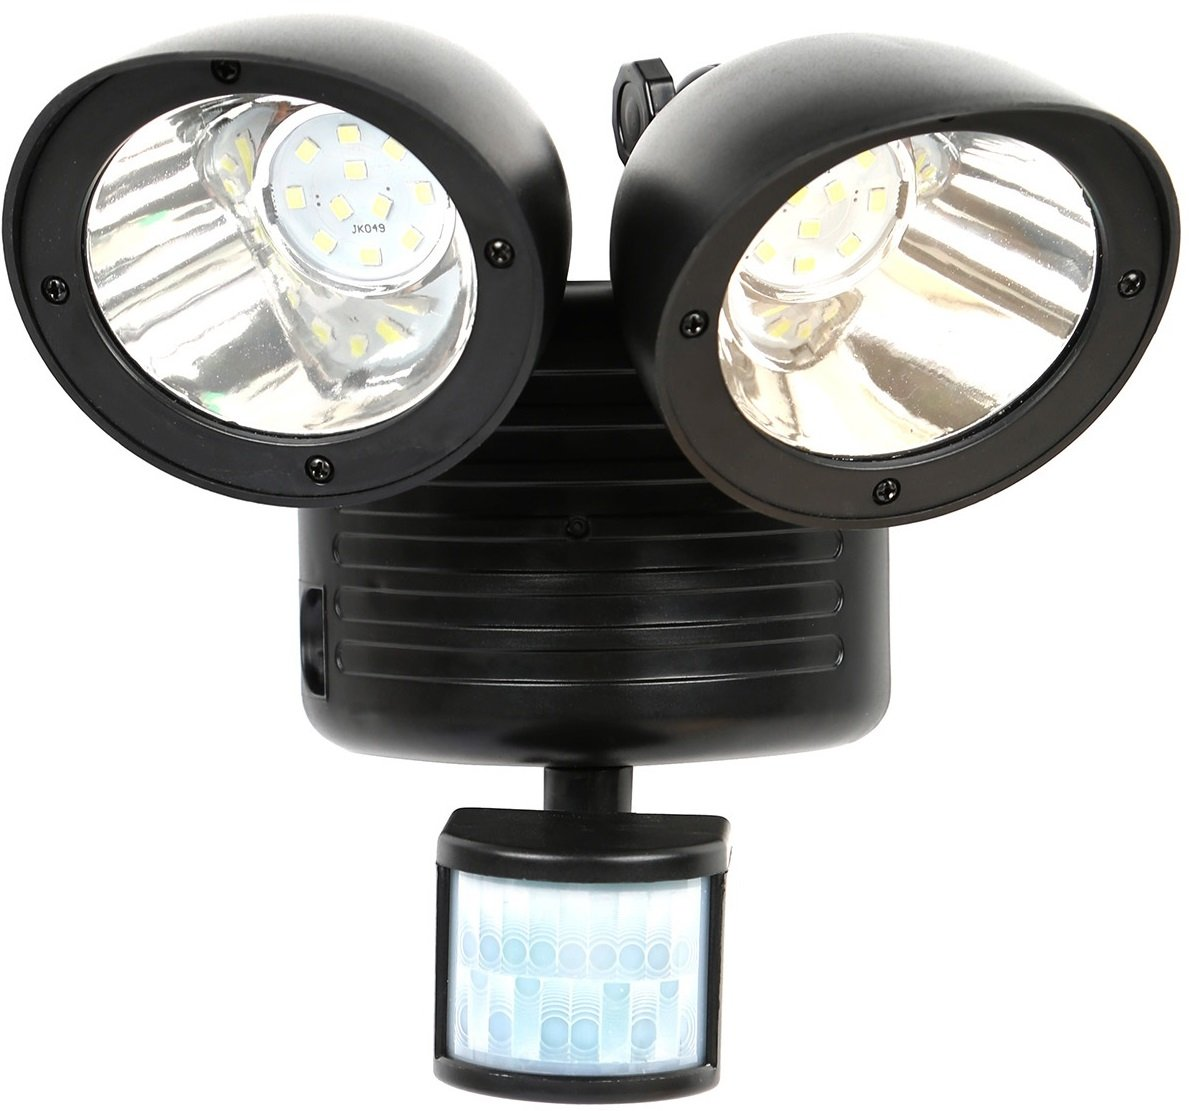 iMounTEK LED Outdoor Security Floodlight with Light Sensor and Solar Charger, Motion Activated